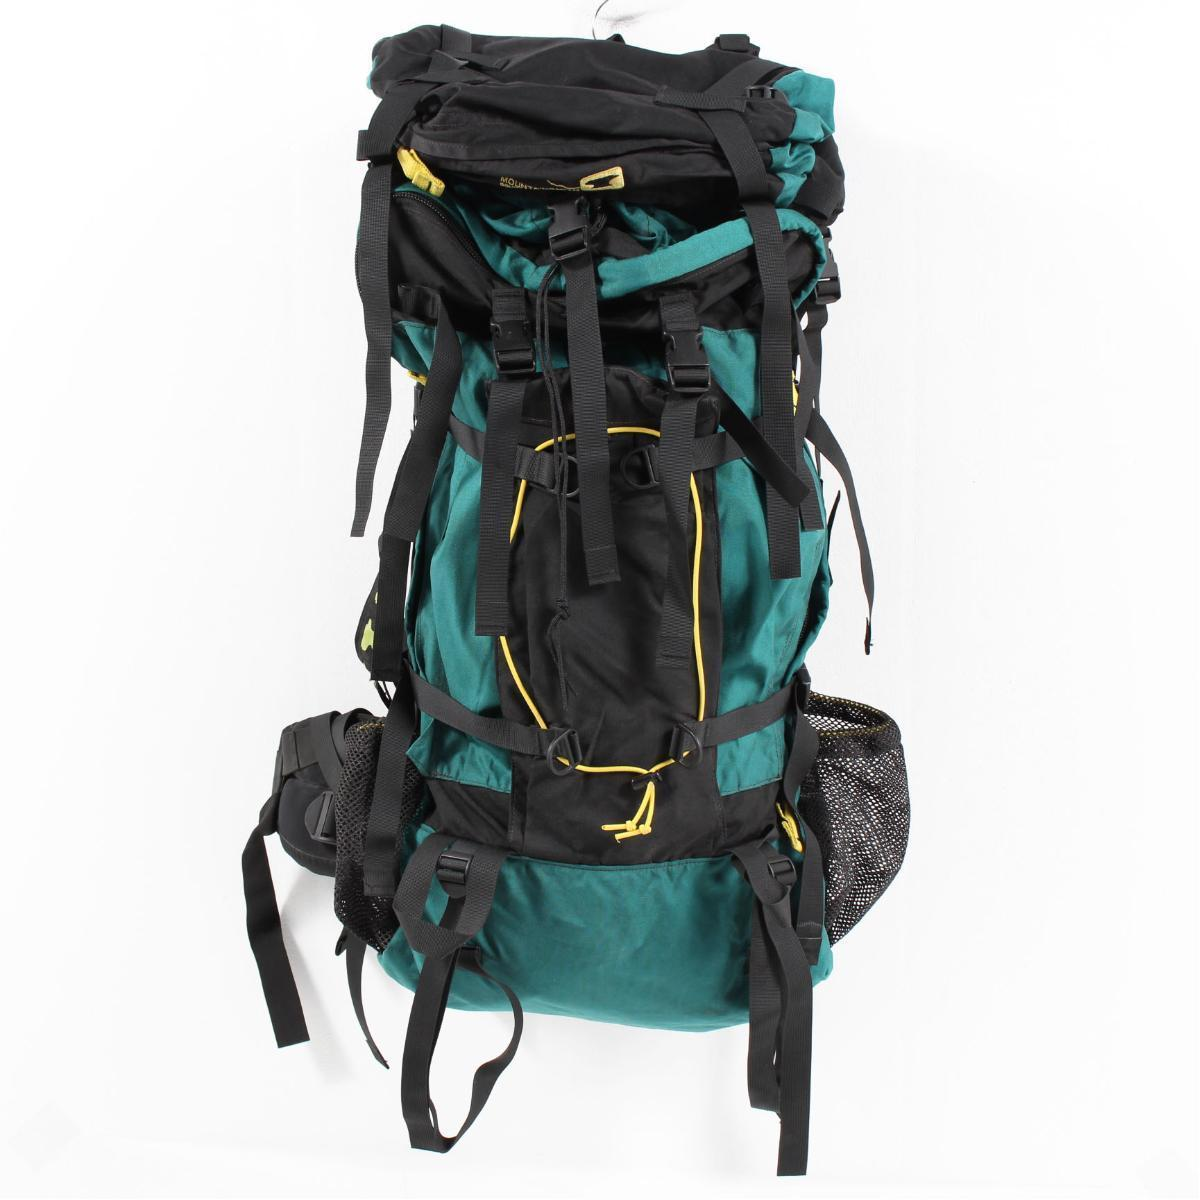 MOUNTAINSMITH バックパック リュックサック USA製 /anc0674 【中古】 【190325】